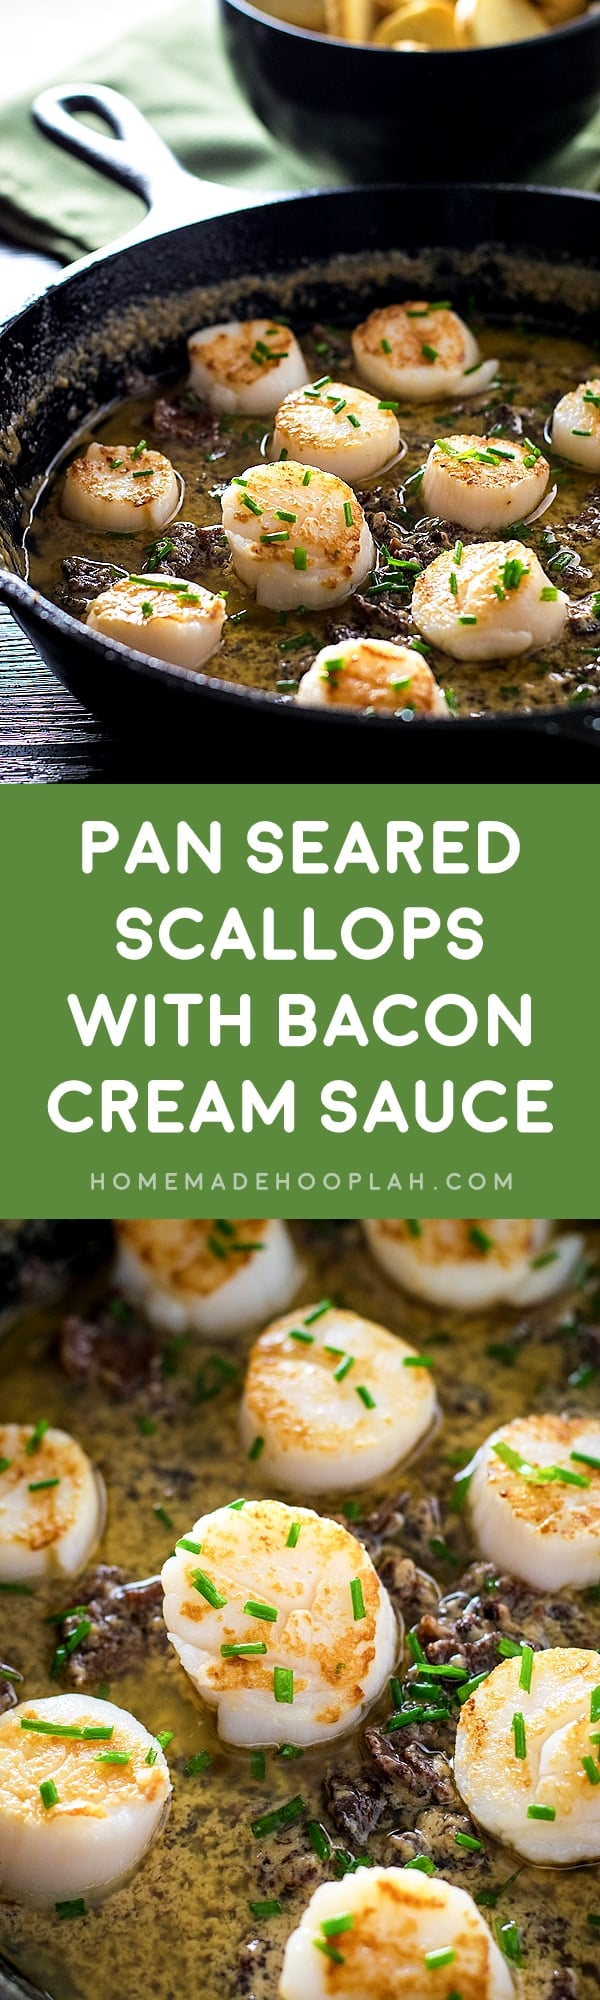 Pan Seared Scallops with Bacon Cream Sauce! An easy dinner made with tender scallops that are pan seared to golden perfection on a bed of creamy and cheesy bacon sauce. | HomemadeHooplah.com